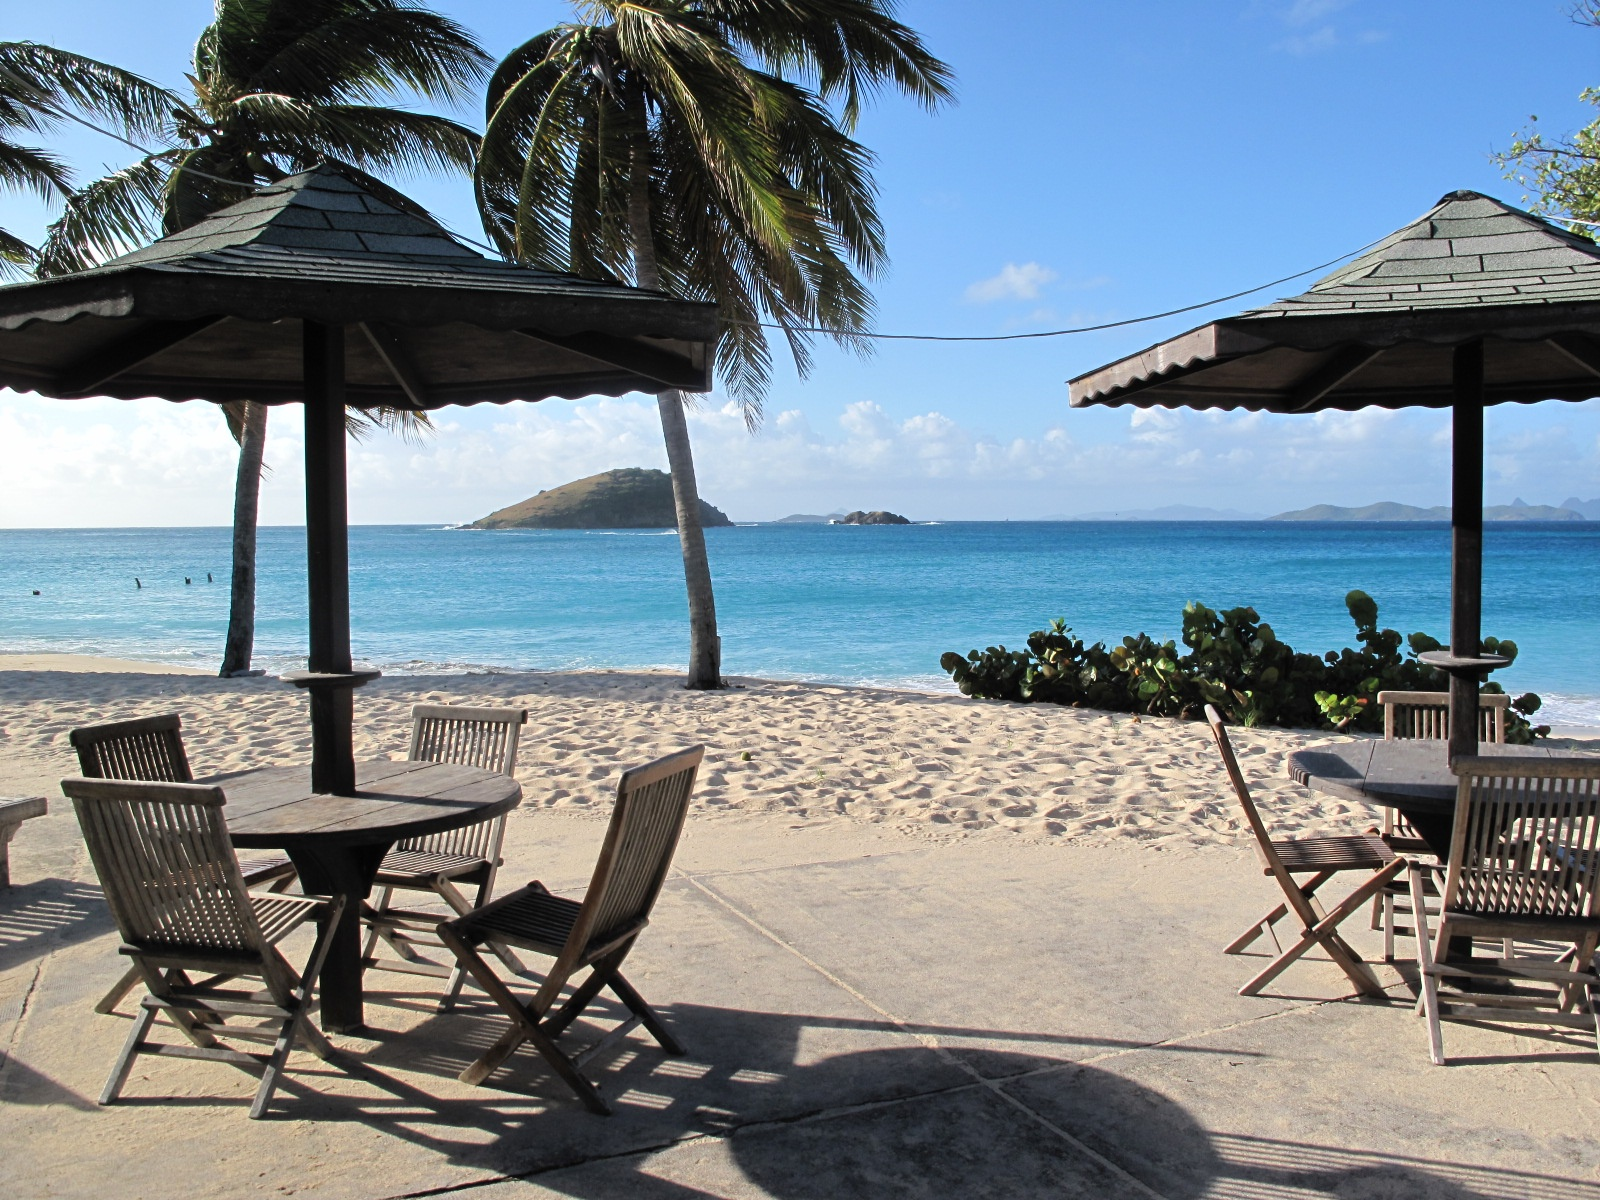 The Thirsty Turtle - The Thirsty Turtle - Canouan, Saint Vincent e Grenadine